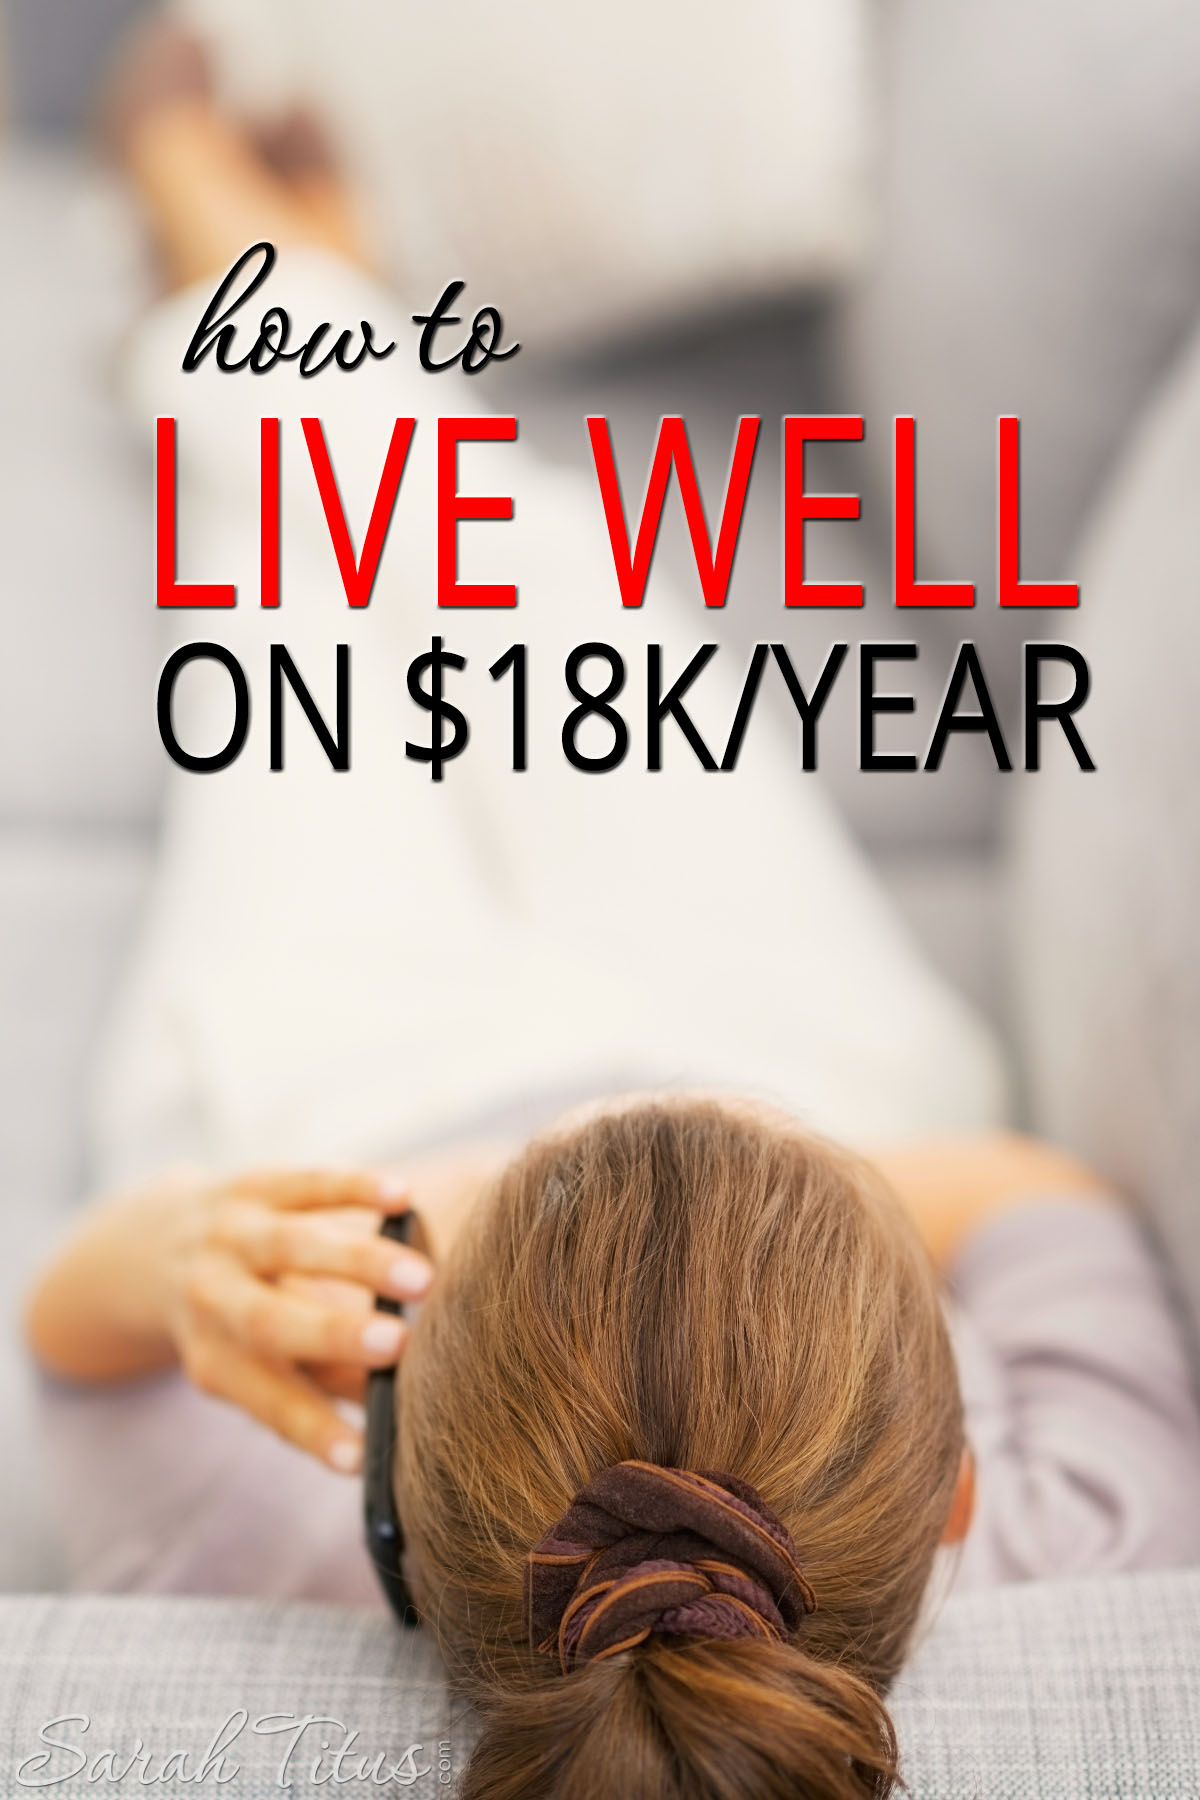 They say it's hard for a family to live on one income. They're wrong! Come along with me as I show you how I, a single SAHM, live pretty DARN good!